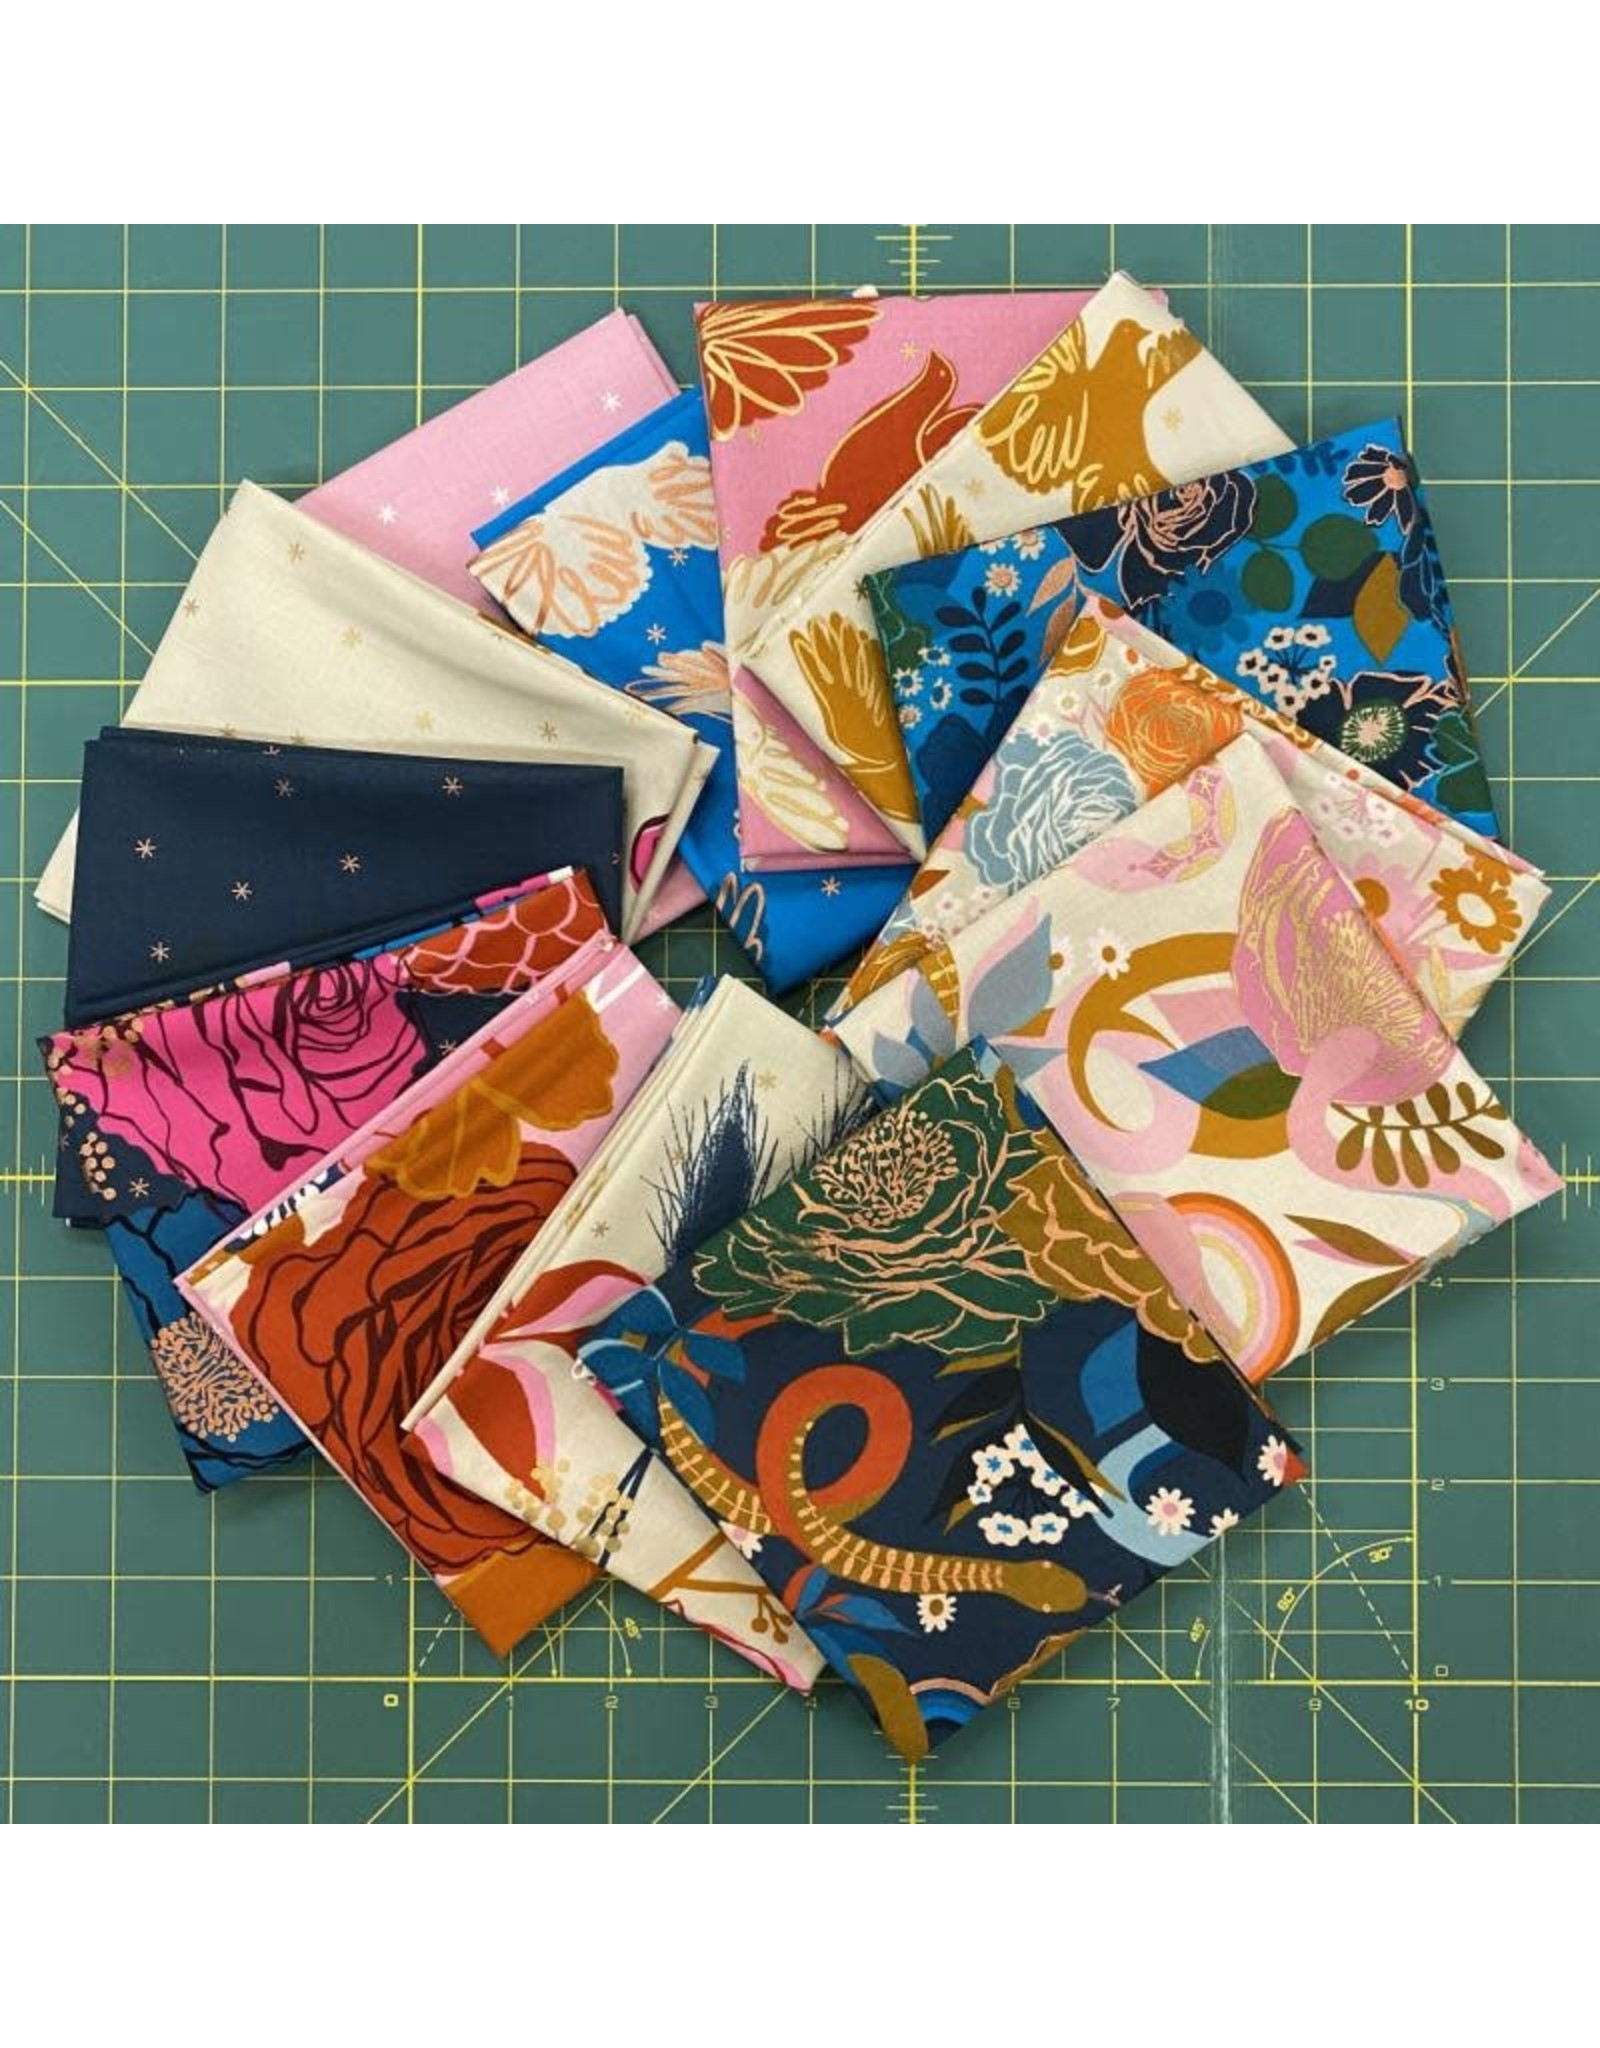 Melody Miller Rise by Melody Miller for Ruby Star Society, Fat Quarter Bundle containing 13 pcs.